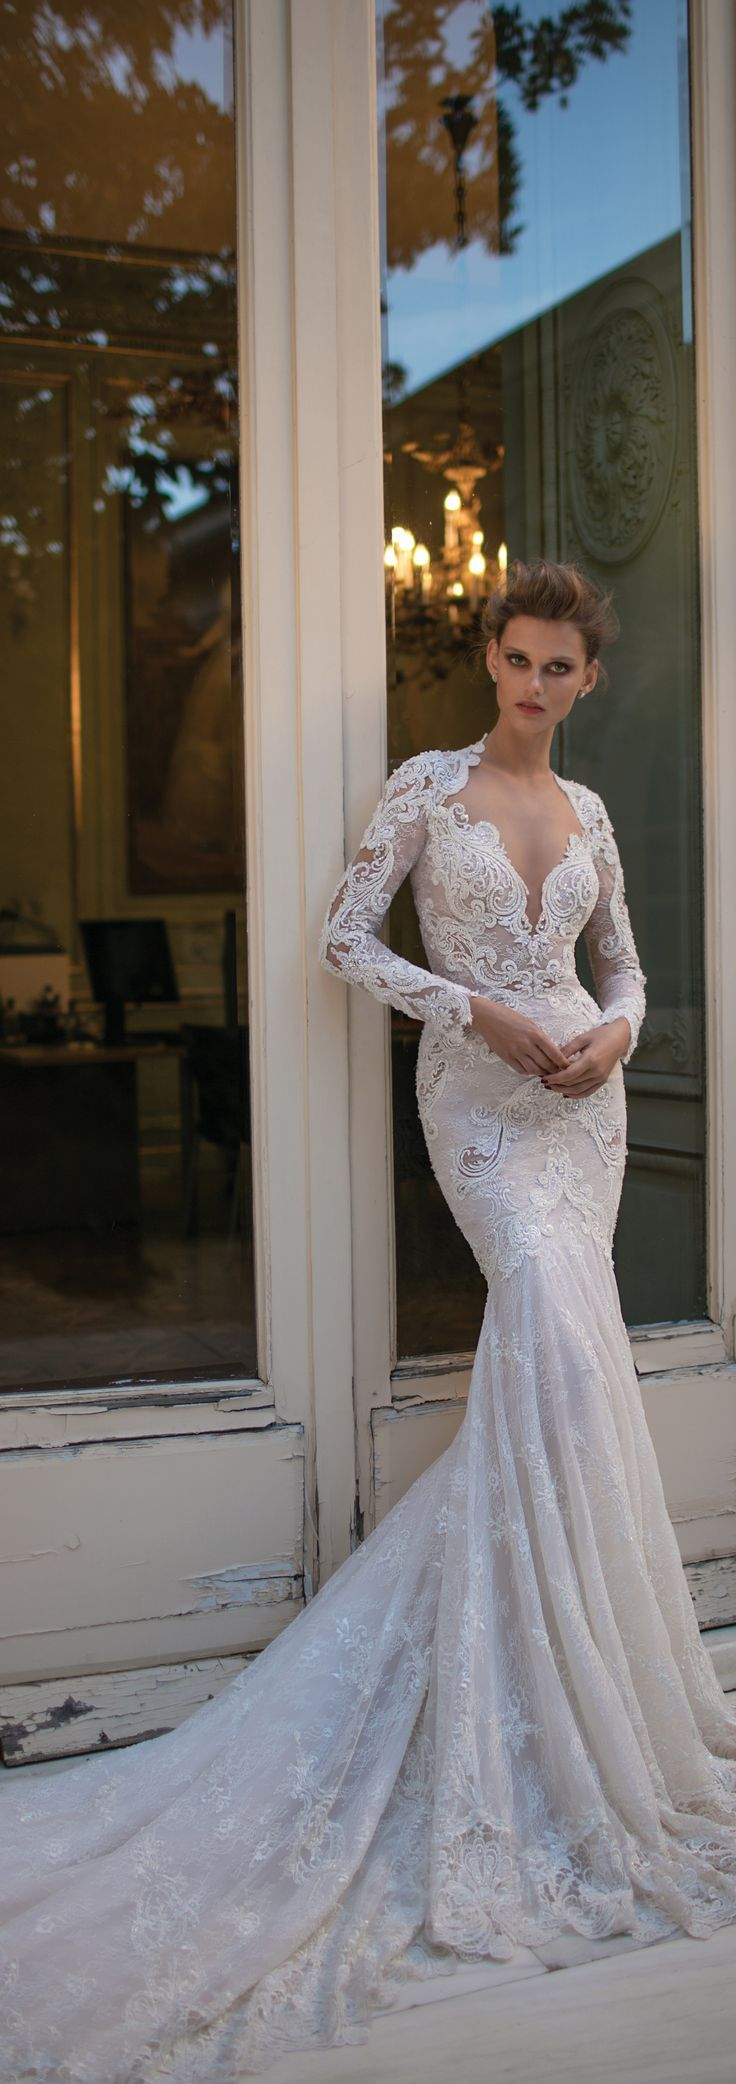 Oh wow, the @bertabridal Pinterest feed is just flooded with so many gorgeous gowns!